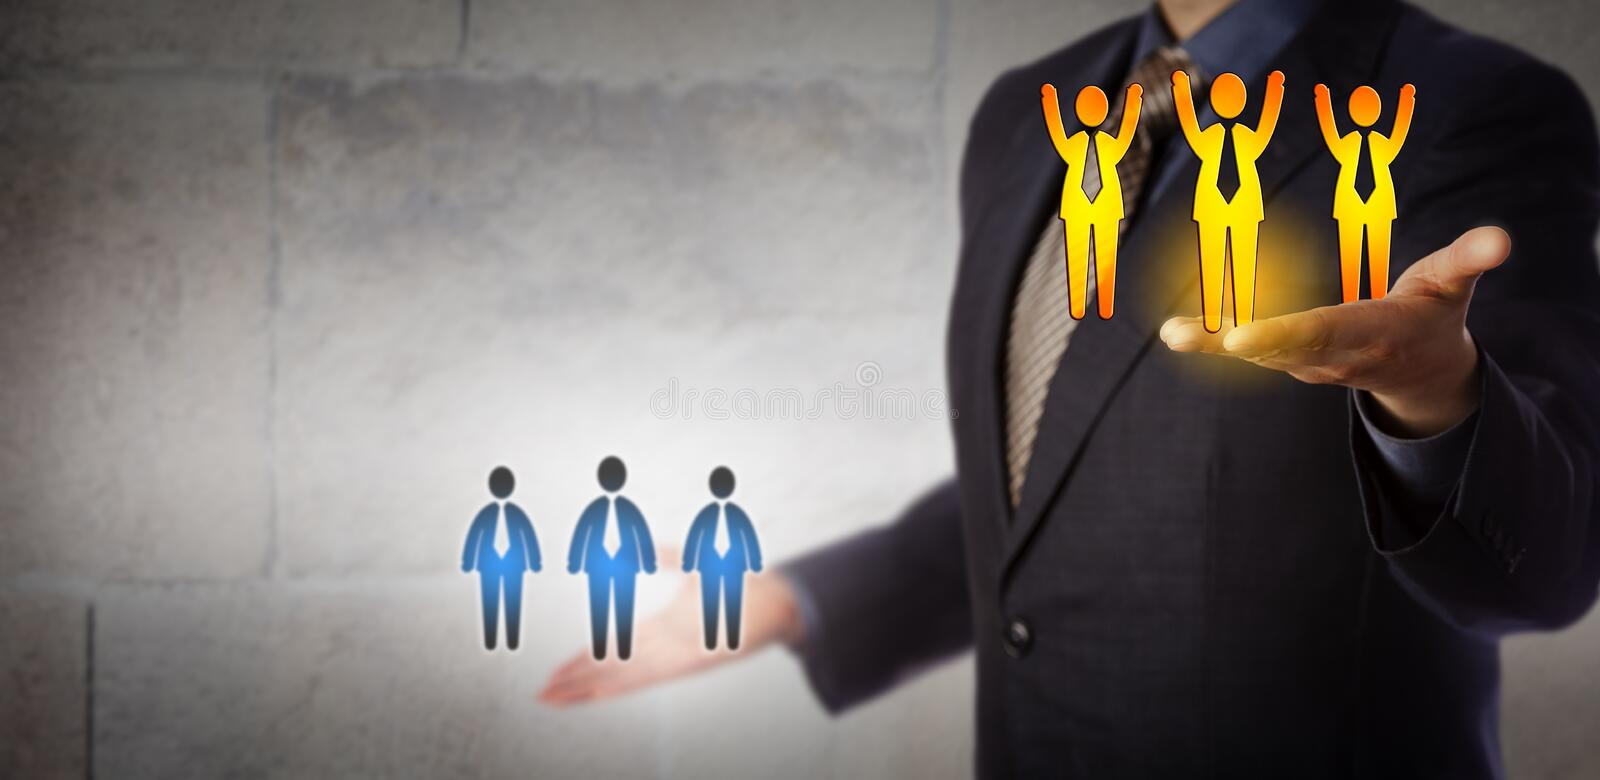 Manager Lifting Winning Team Above Average Workers royalty free stock images